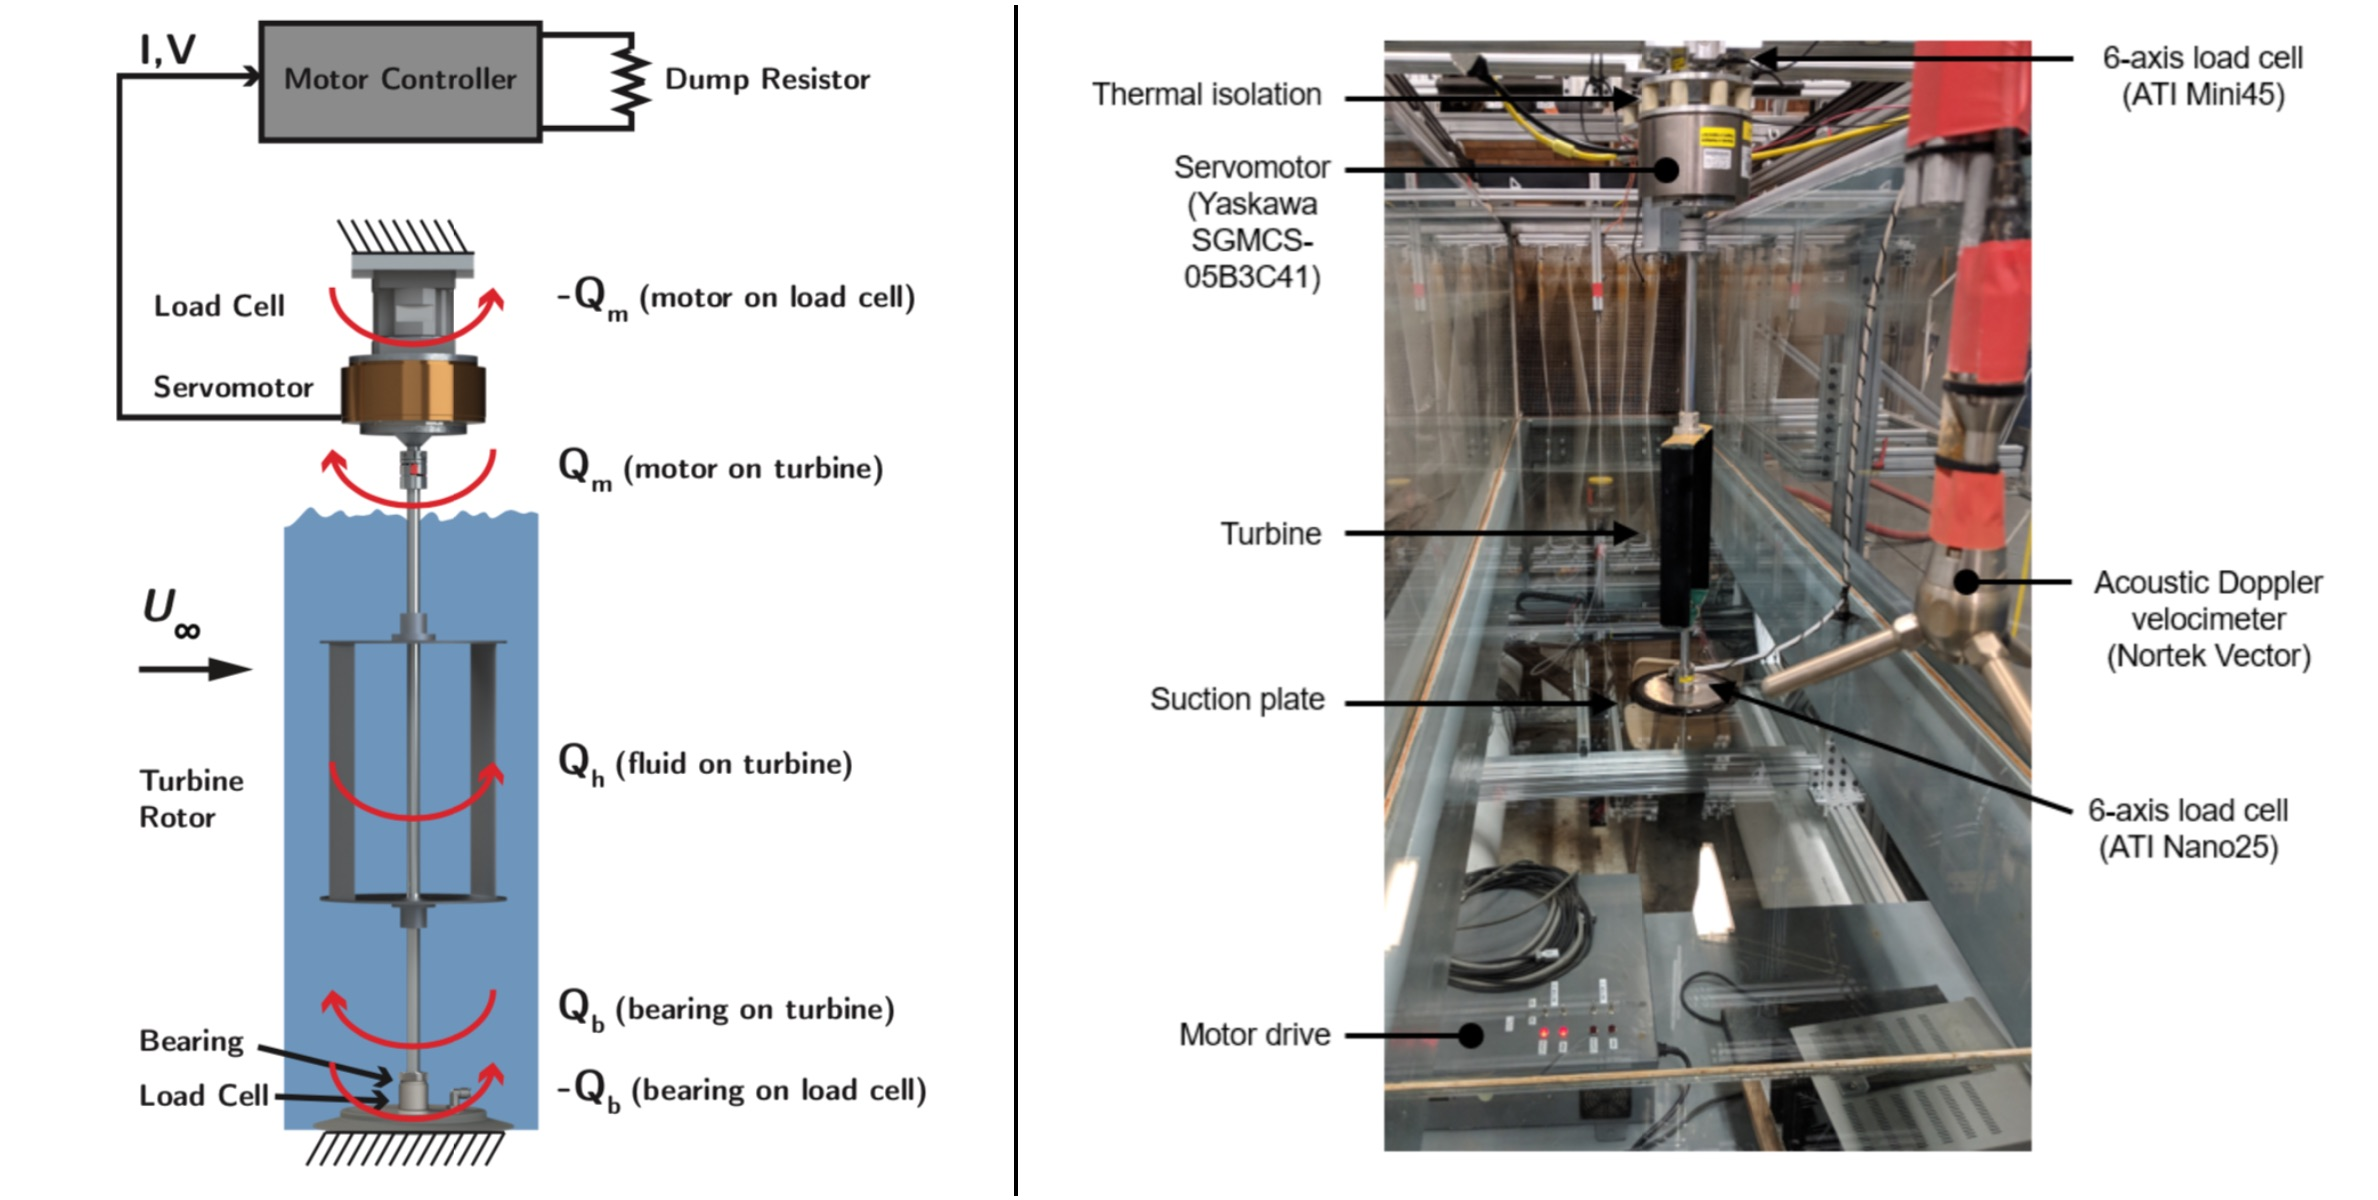 Annotated images of the experimental apparatus shown schematically and as implemented (minus water).